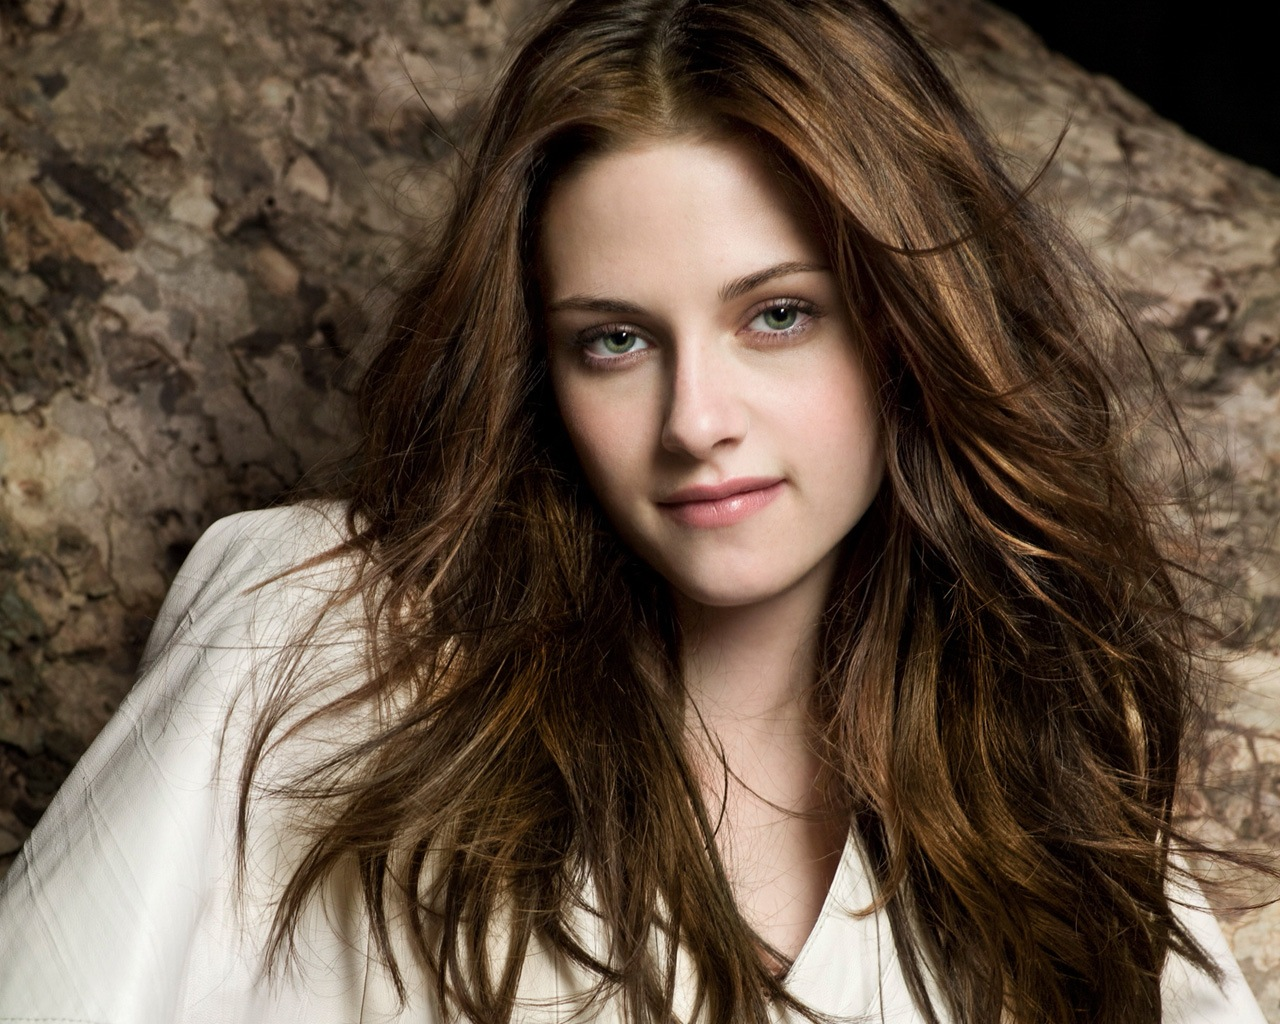 Wallpapers Android Best Hollywood Actress HD Wallpapers 1280x1024